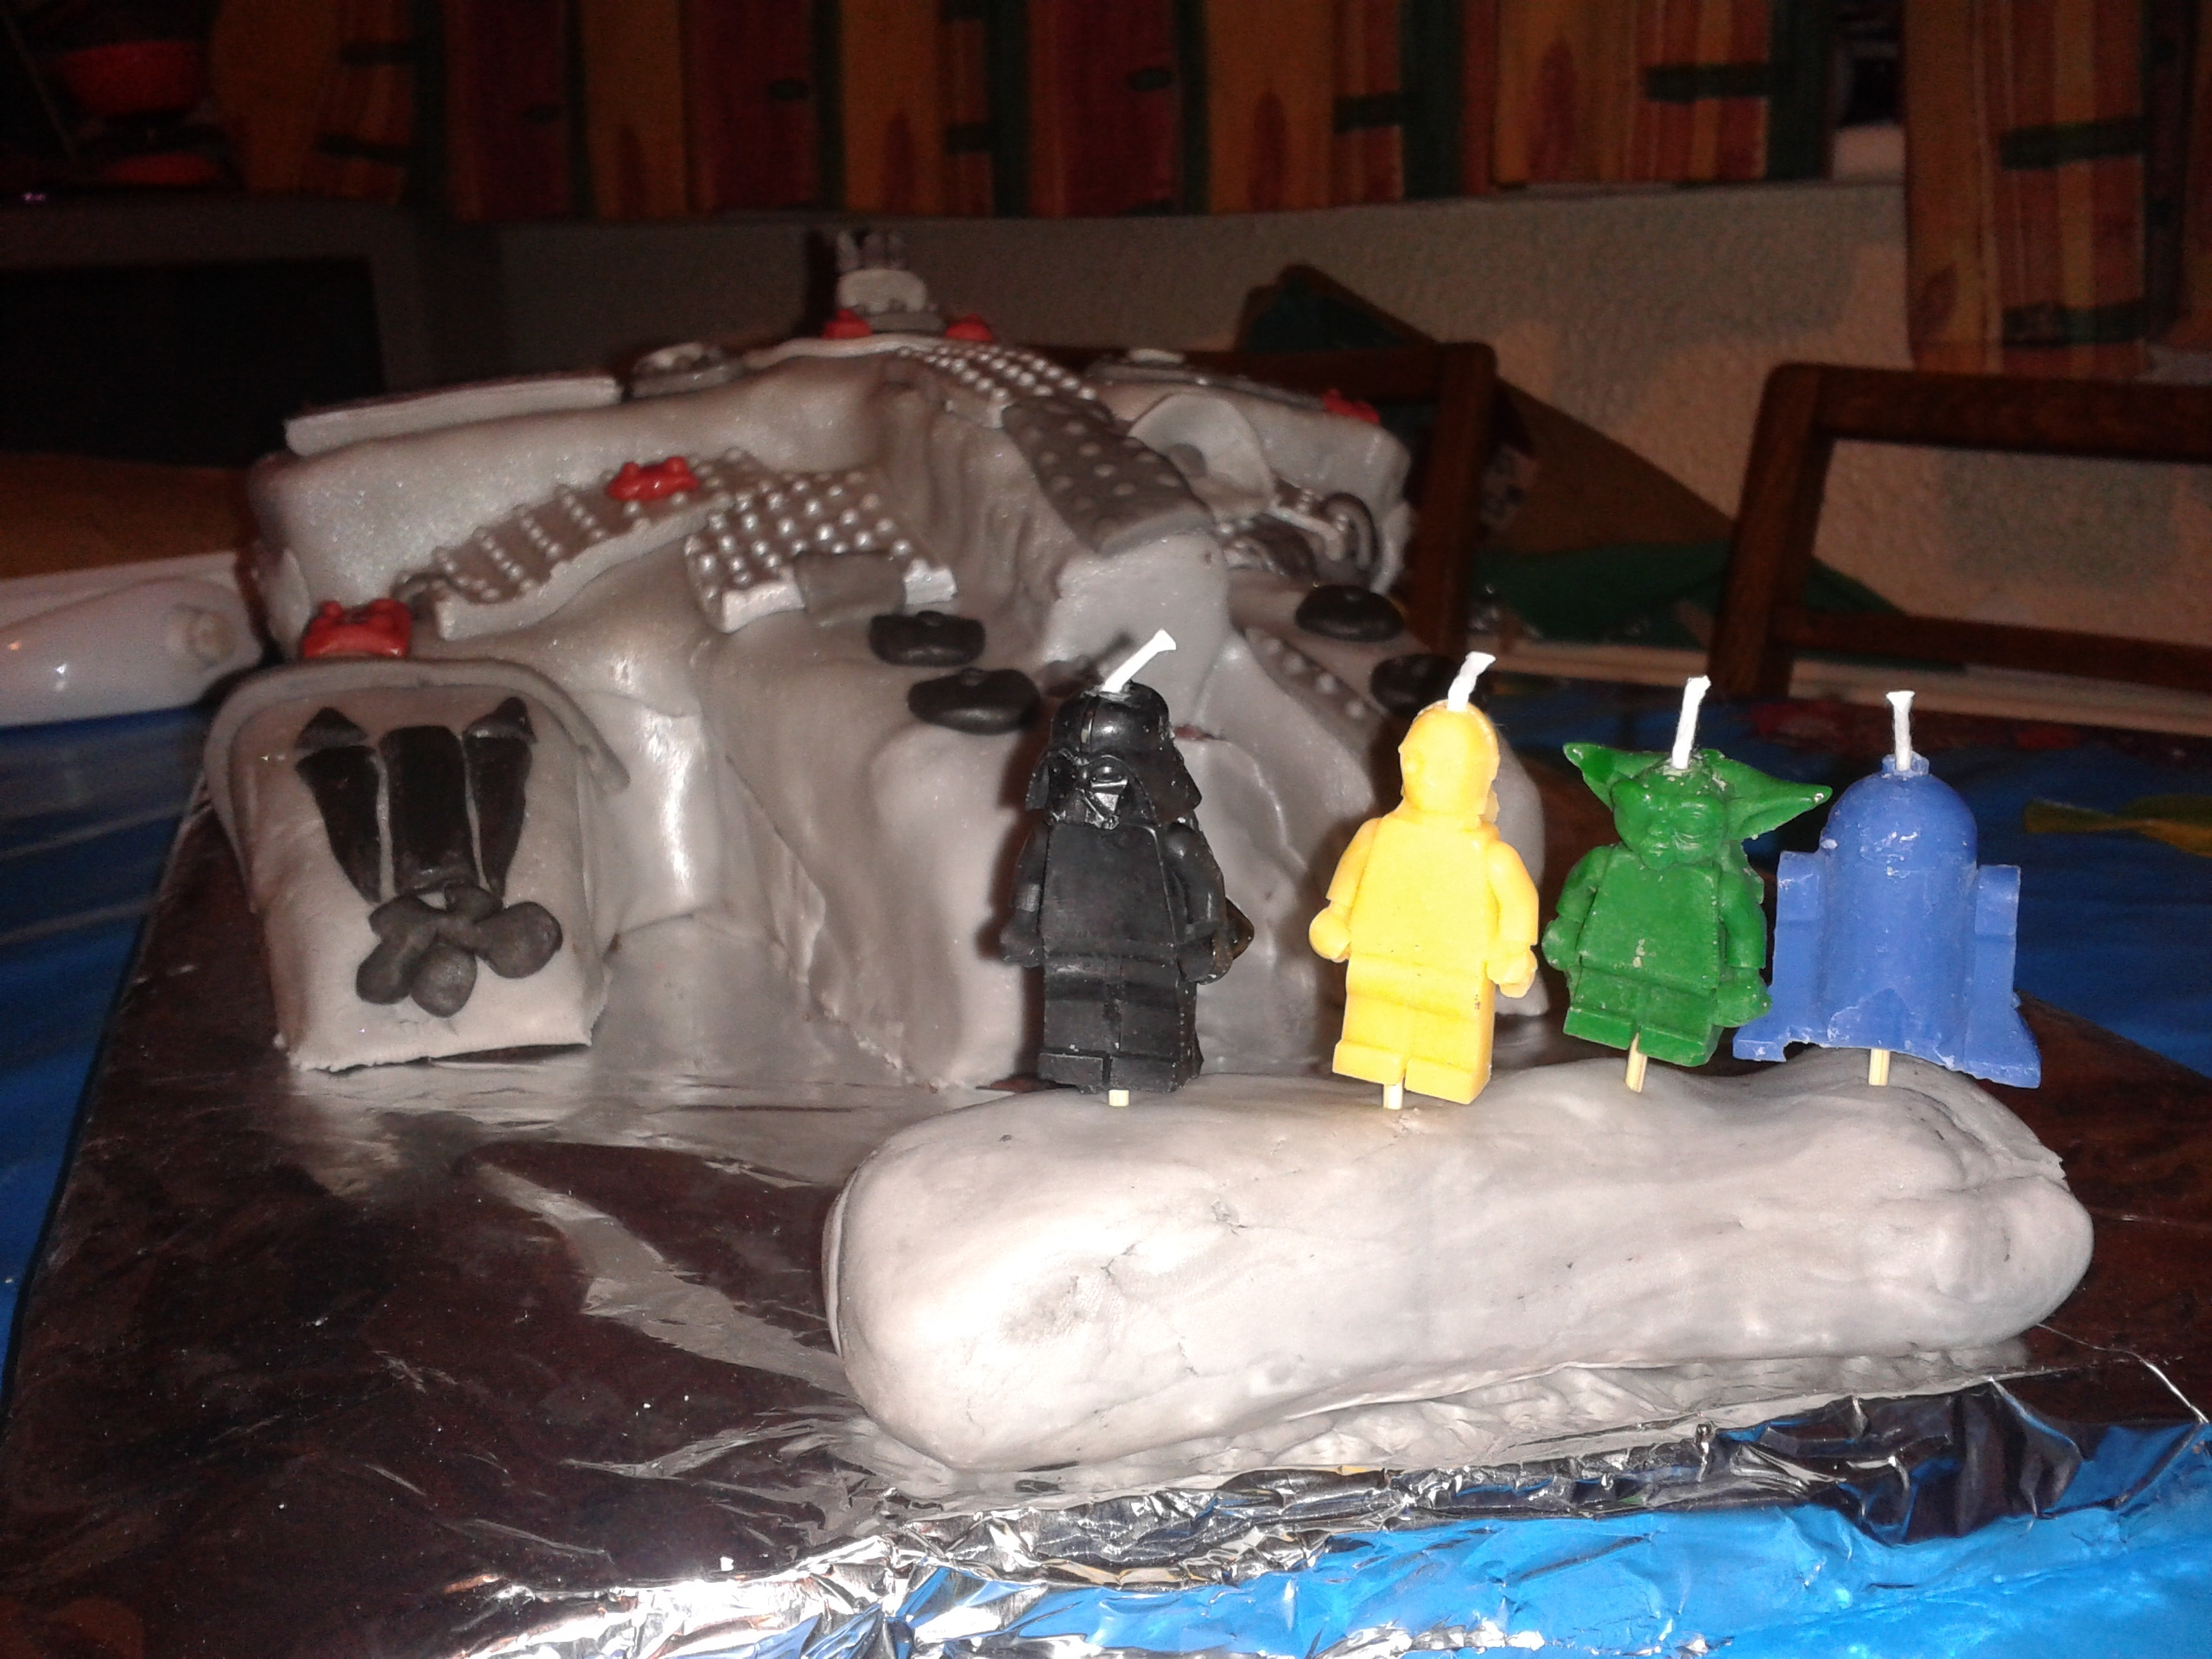 Lego Millenium Falcon Cake Make For An 8th Birthday Star Wars Figure Candles Add The Finishing Touches